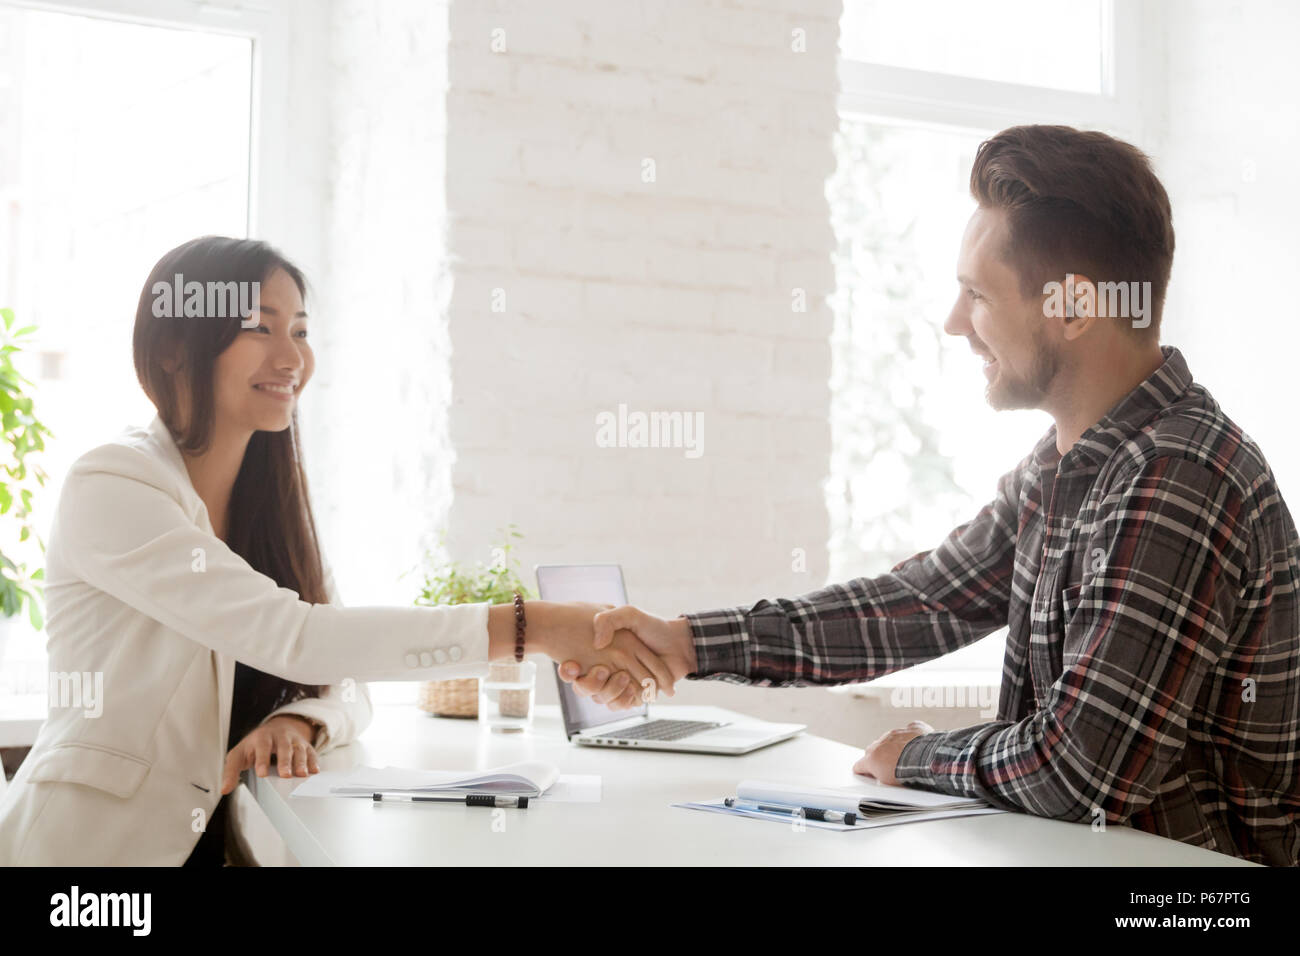 Smiling partners handshaking after successful work negotiations Stock Photo